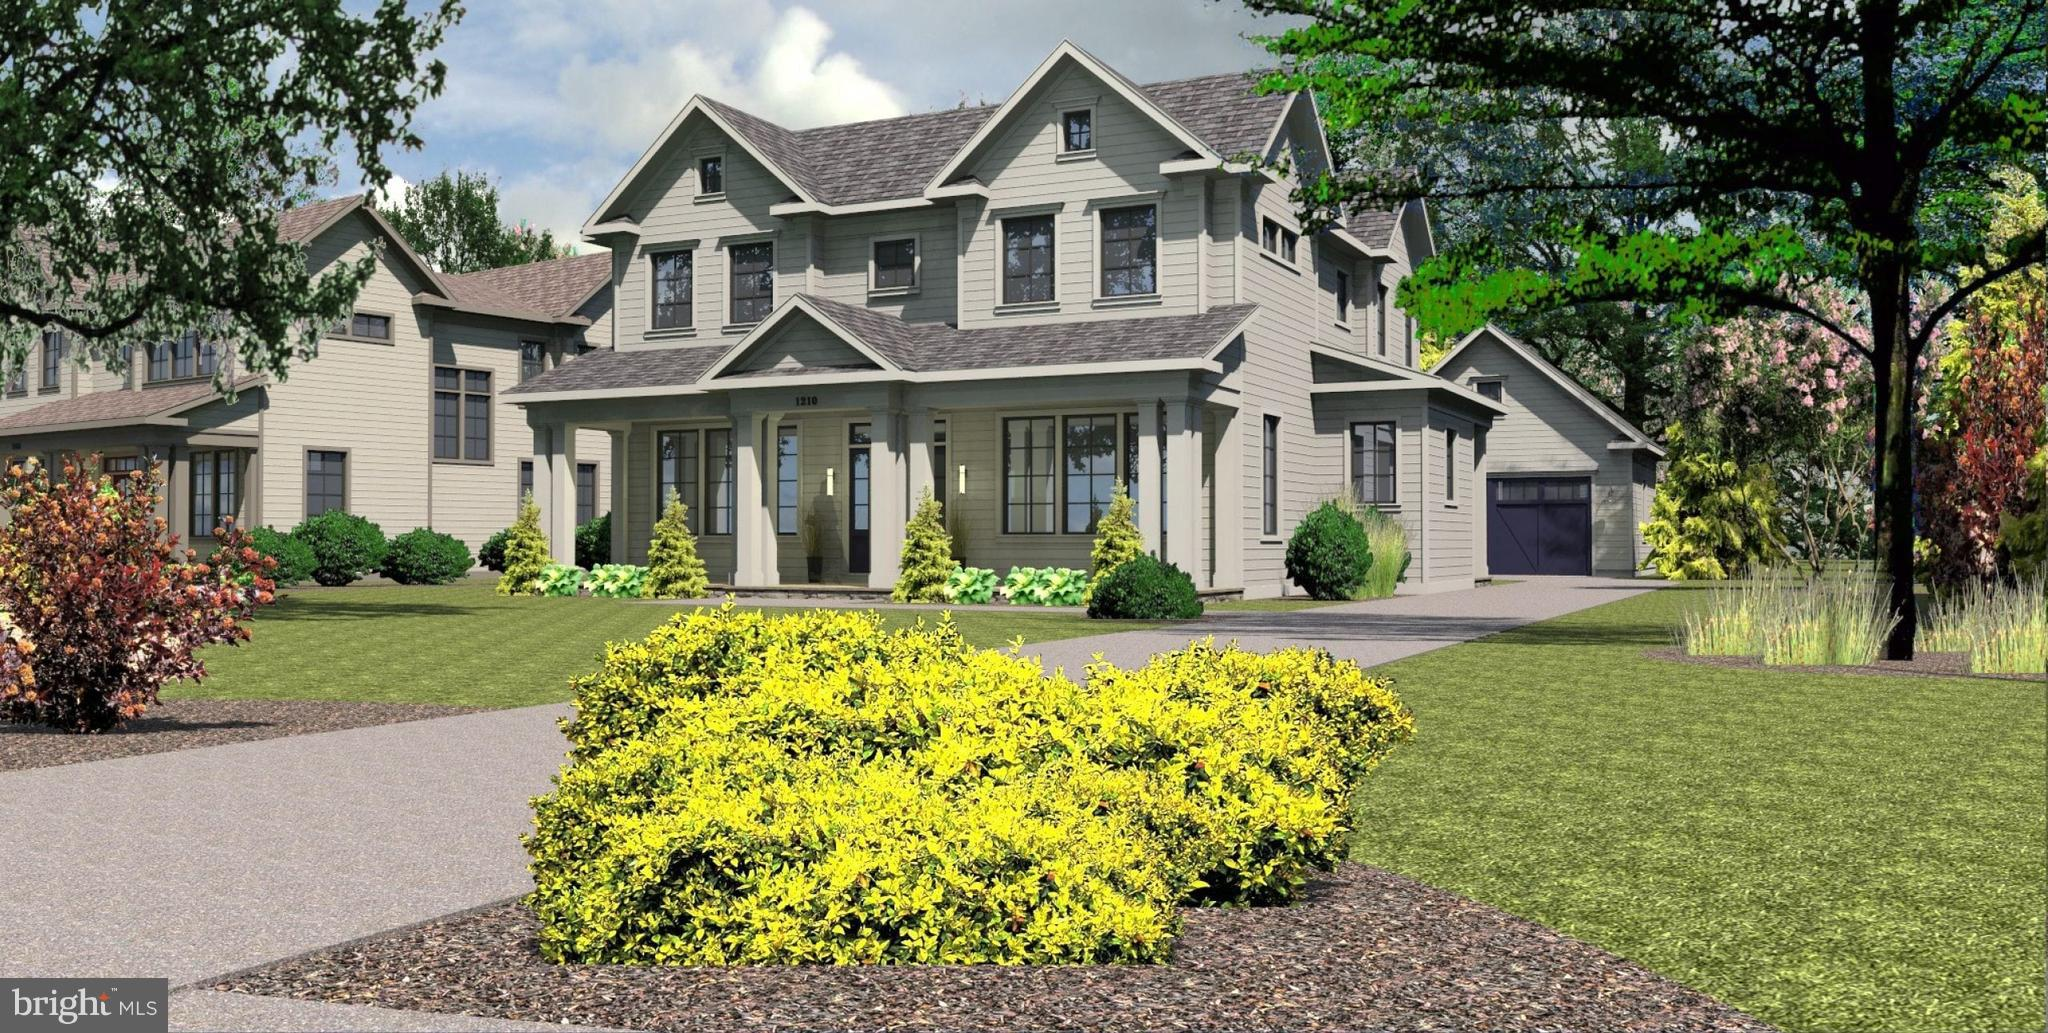 SPRING 2019 DELIVERY! AVAILABLE FOR PRE-MARKET SALE! Rare 1/2 acre lot. OVER 4,700SF. Luxury finishes. Culinary KIT opens to great room. Custom trim+oversized crown molding. Open concept w/formal living spaces. Spacious LL w/Rec Rm/5th BR+BA (ideal guest suite). ML mudroom. Grand MBR w/spa shower+designer features. UL laundry. Detached 2 garage. STILL TIME TO CUSTOMIZE. Pool/screen porch option.